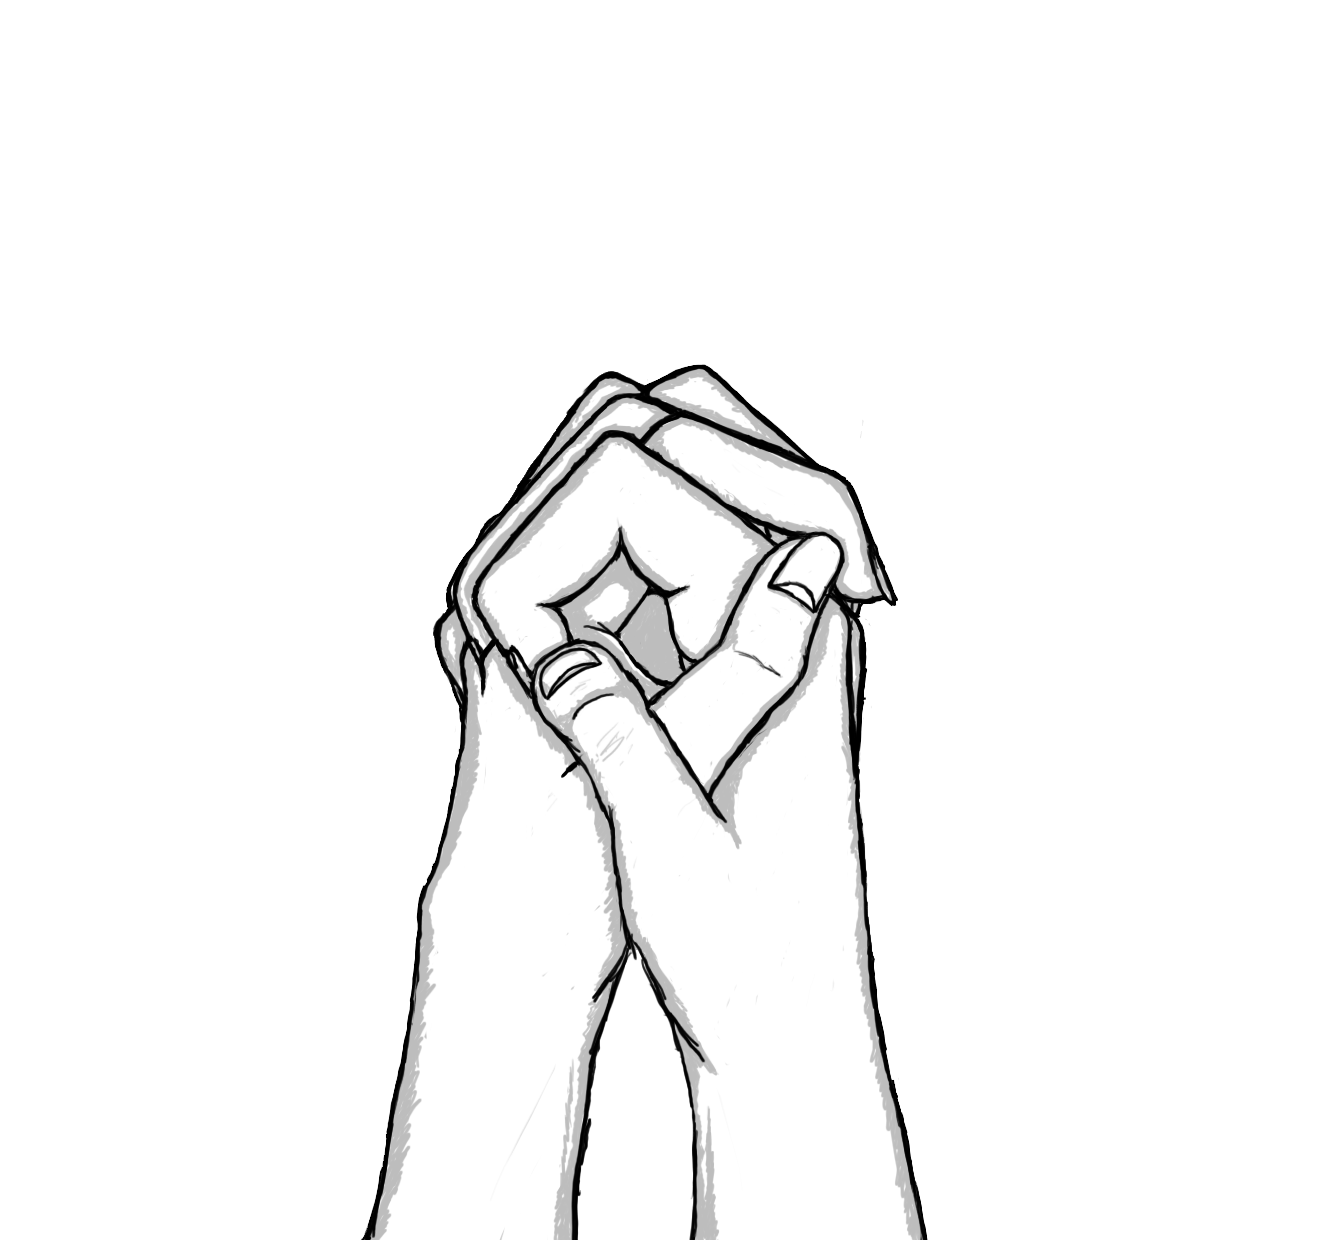 Back of hand drawing anime people holding hands